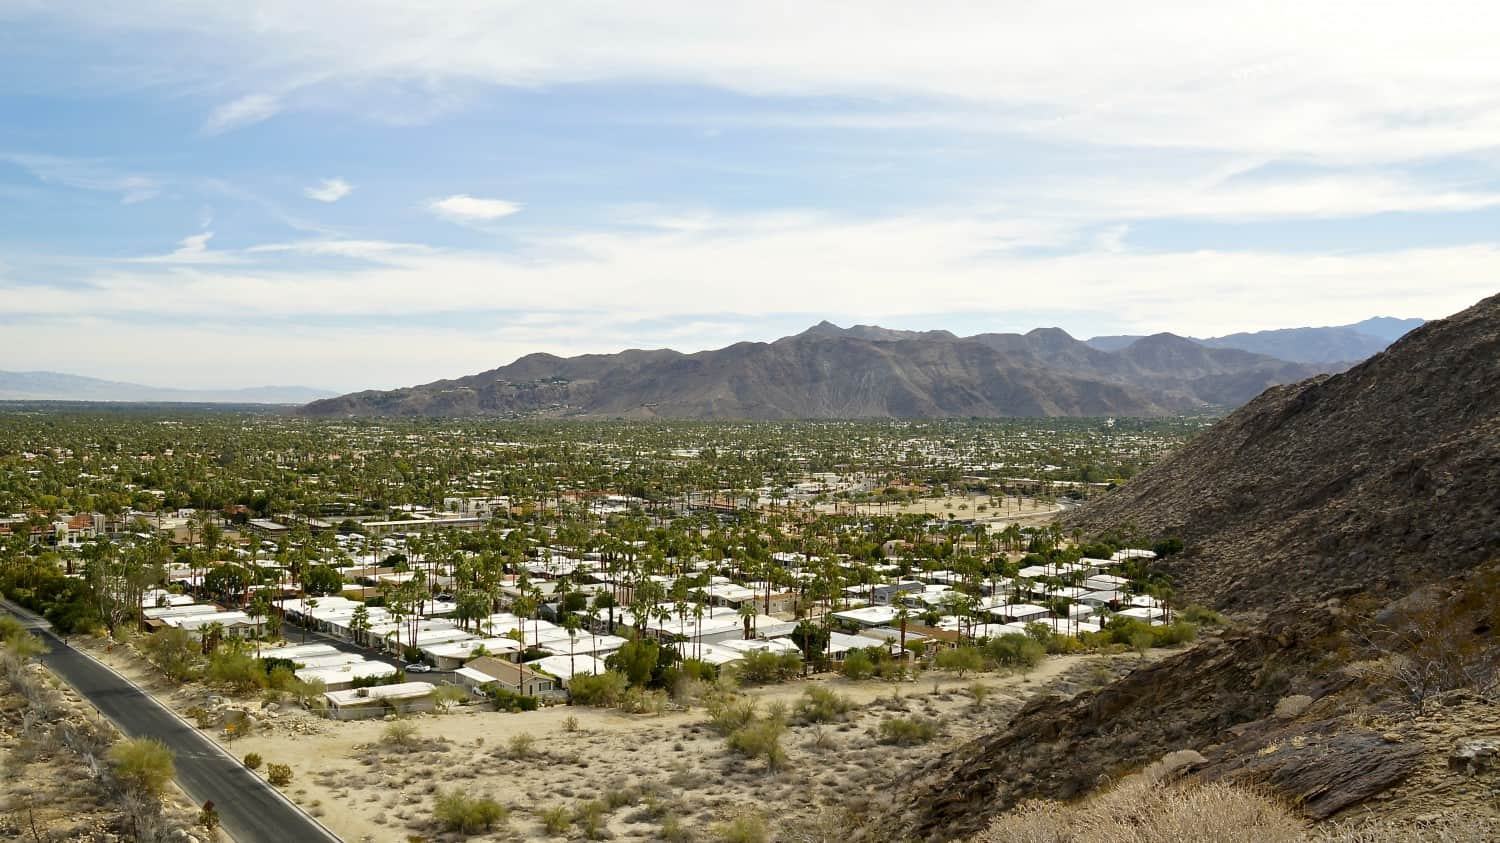 View from the pet-friendly South Lykken Trail in Palm Springs, CA